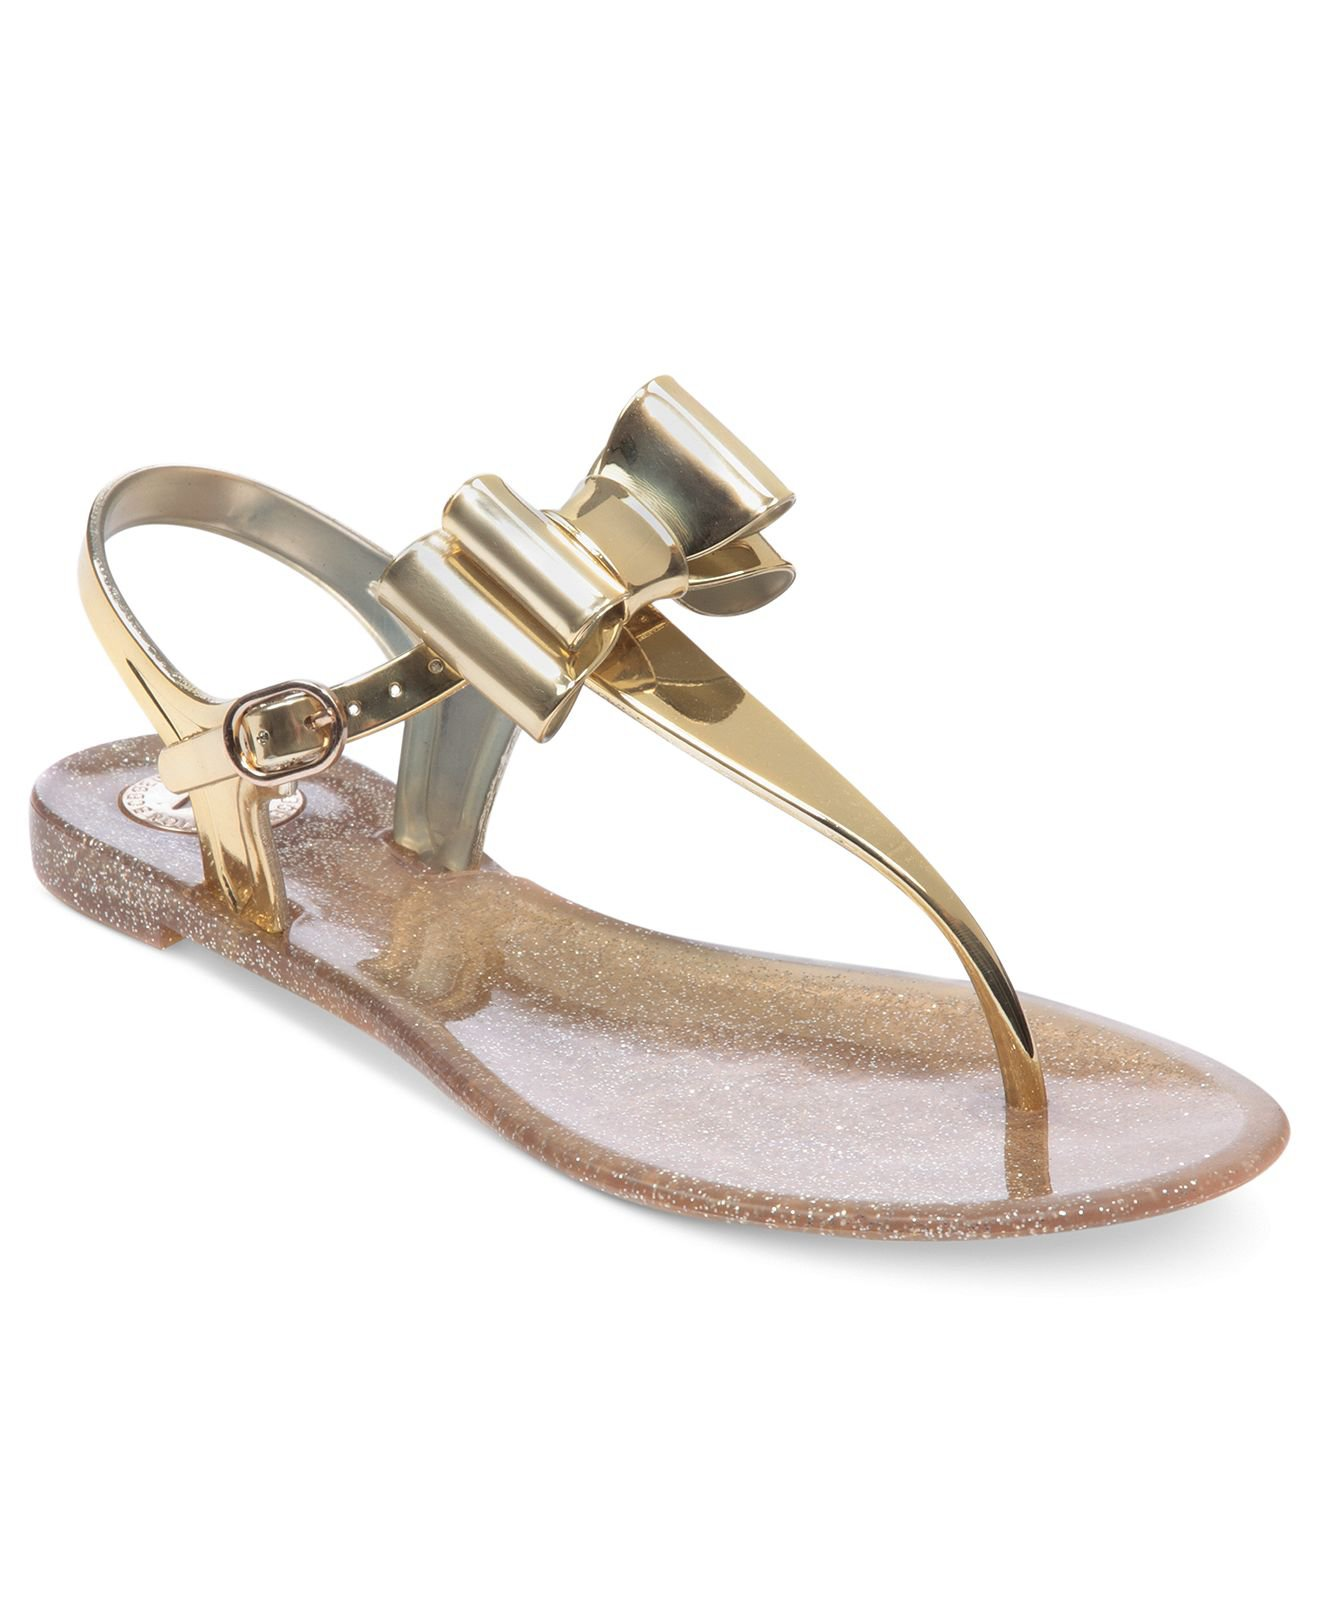 Bcbgeneration Shoes Demee Jelly Thong From Macys